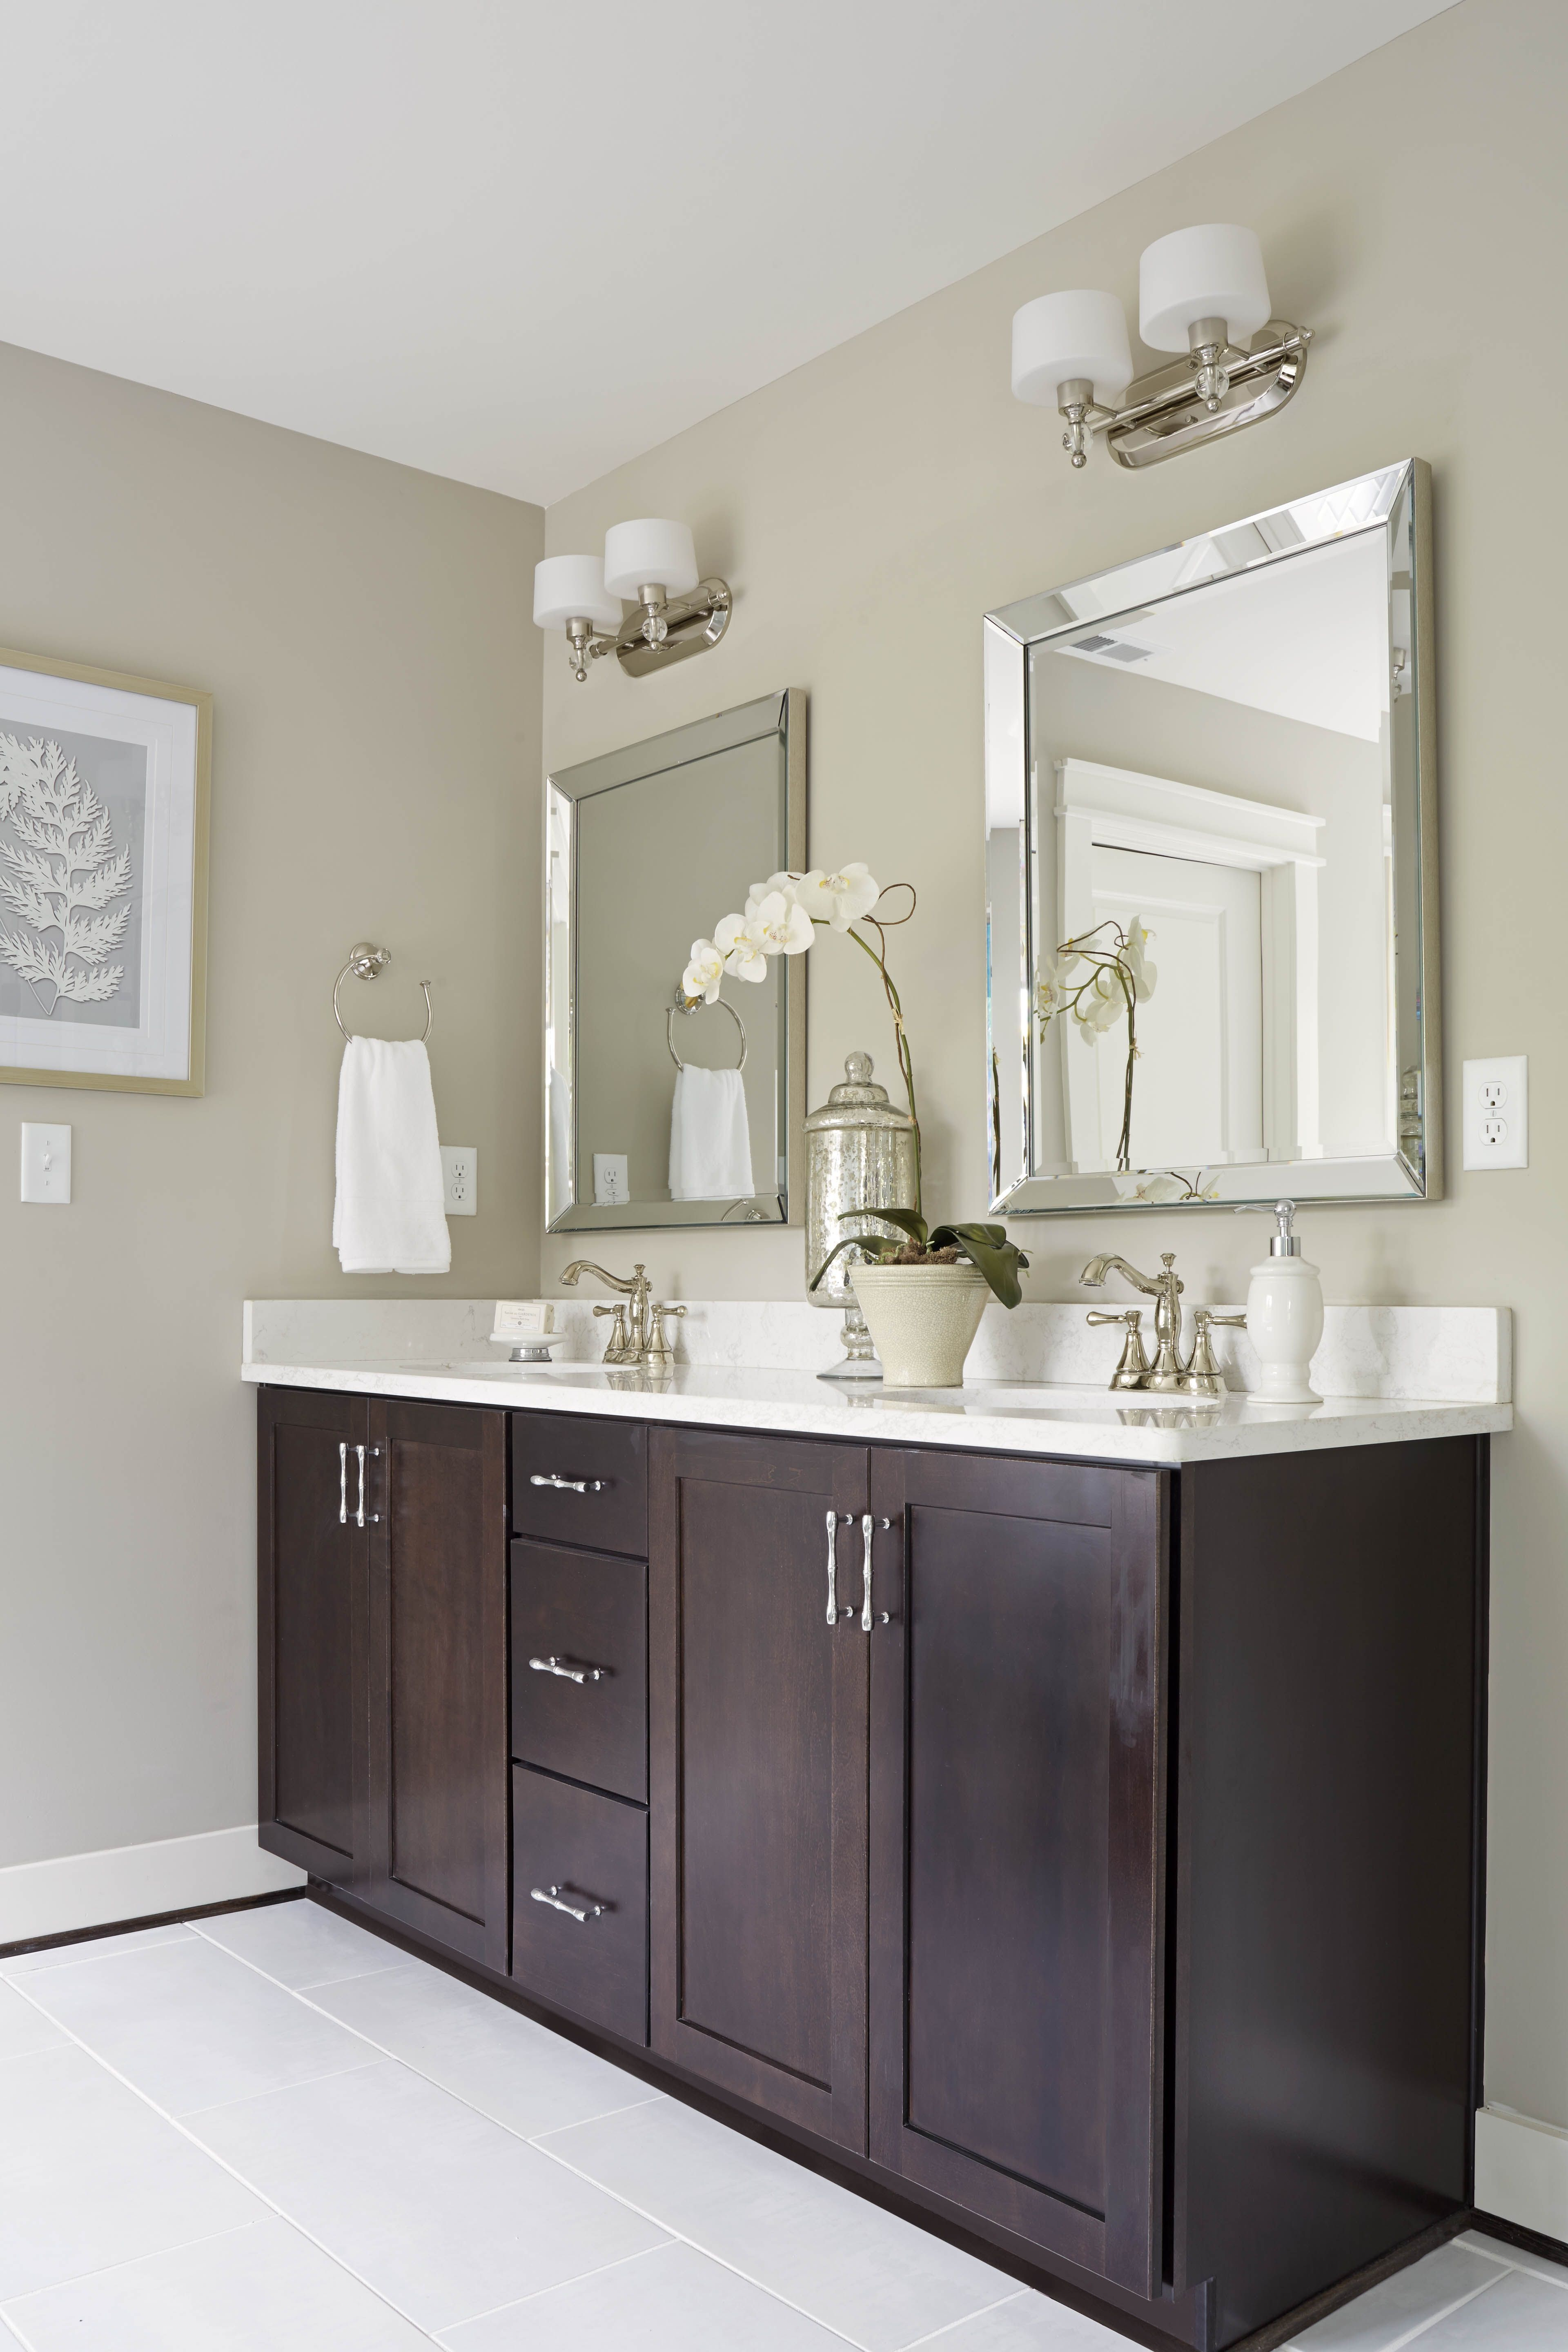 Bathroom Lighting Tip Use Fixtures That Provide At Least 75 To 100 Watts Of Total